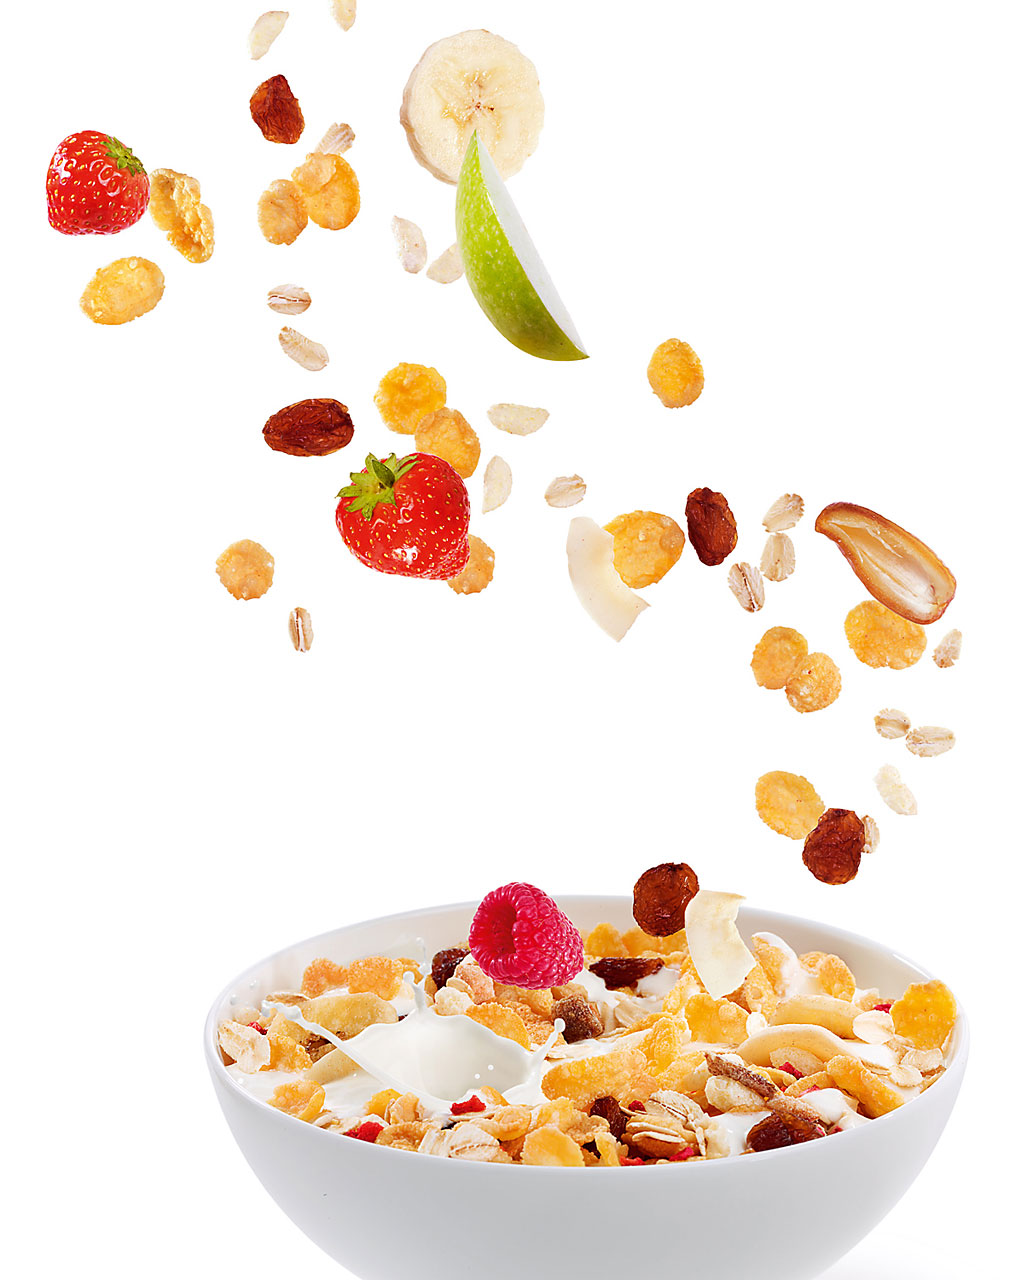 Sabine-Scheer-splash-photography-milk-muesli